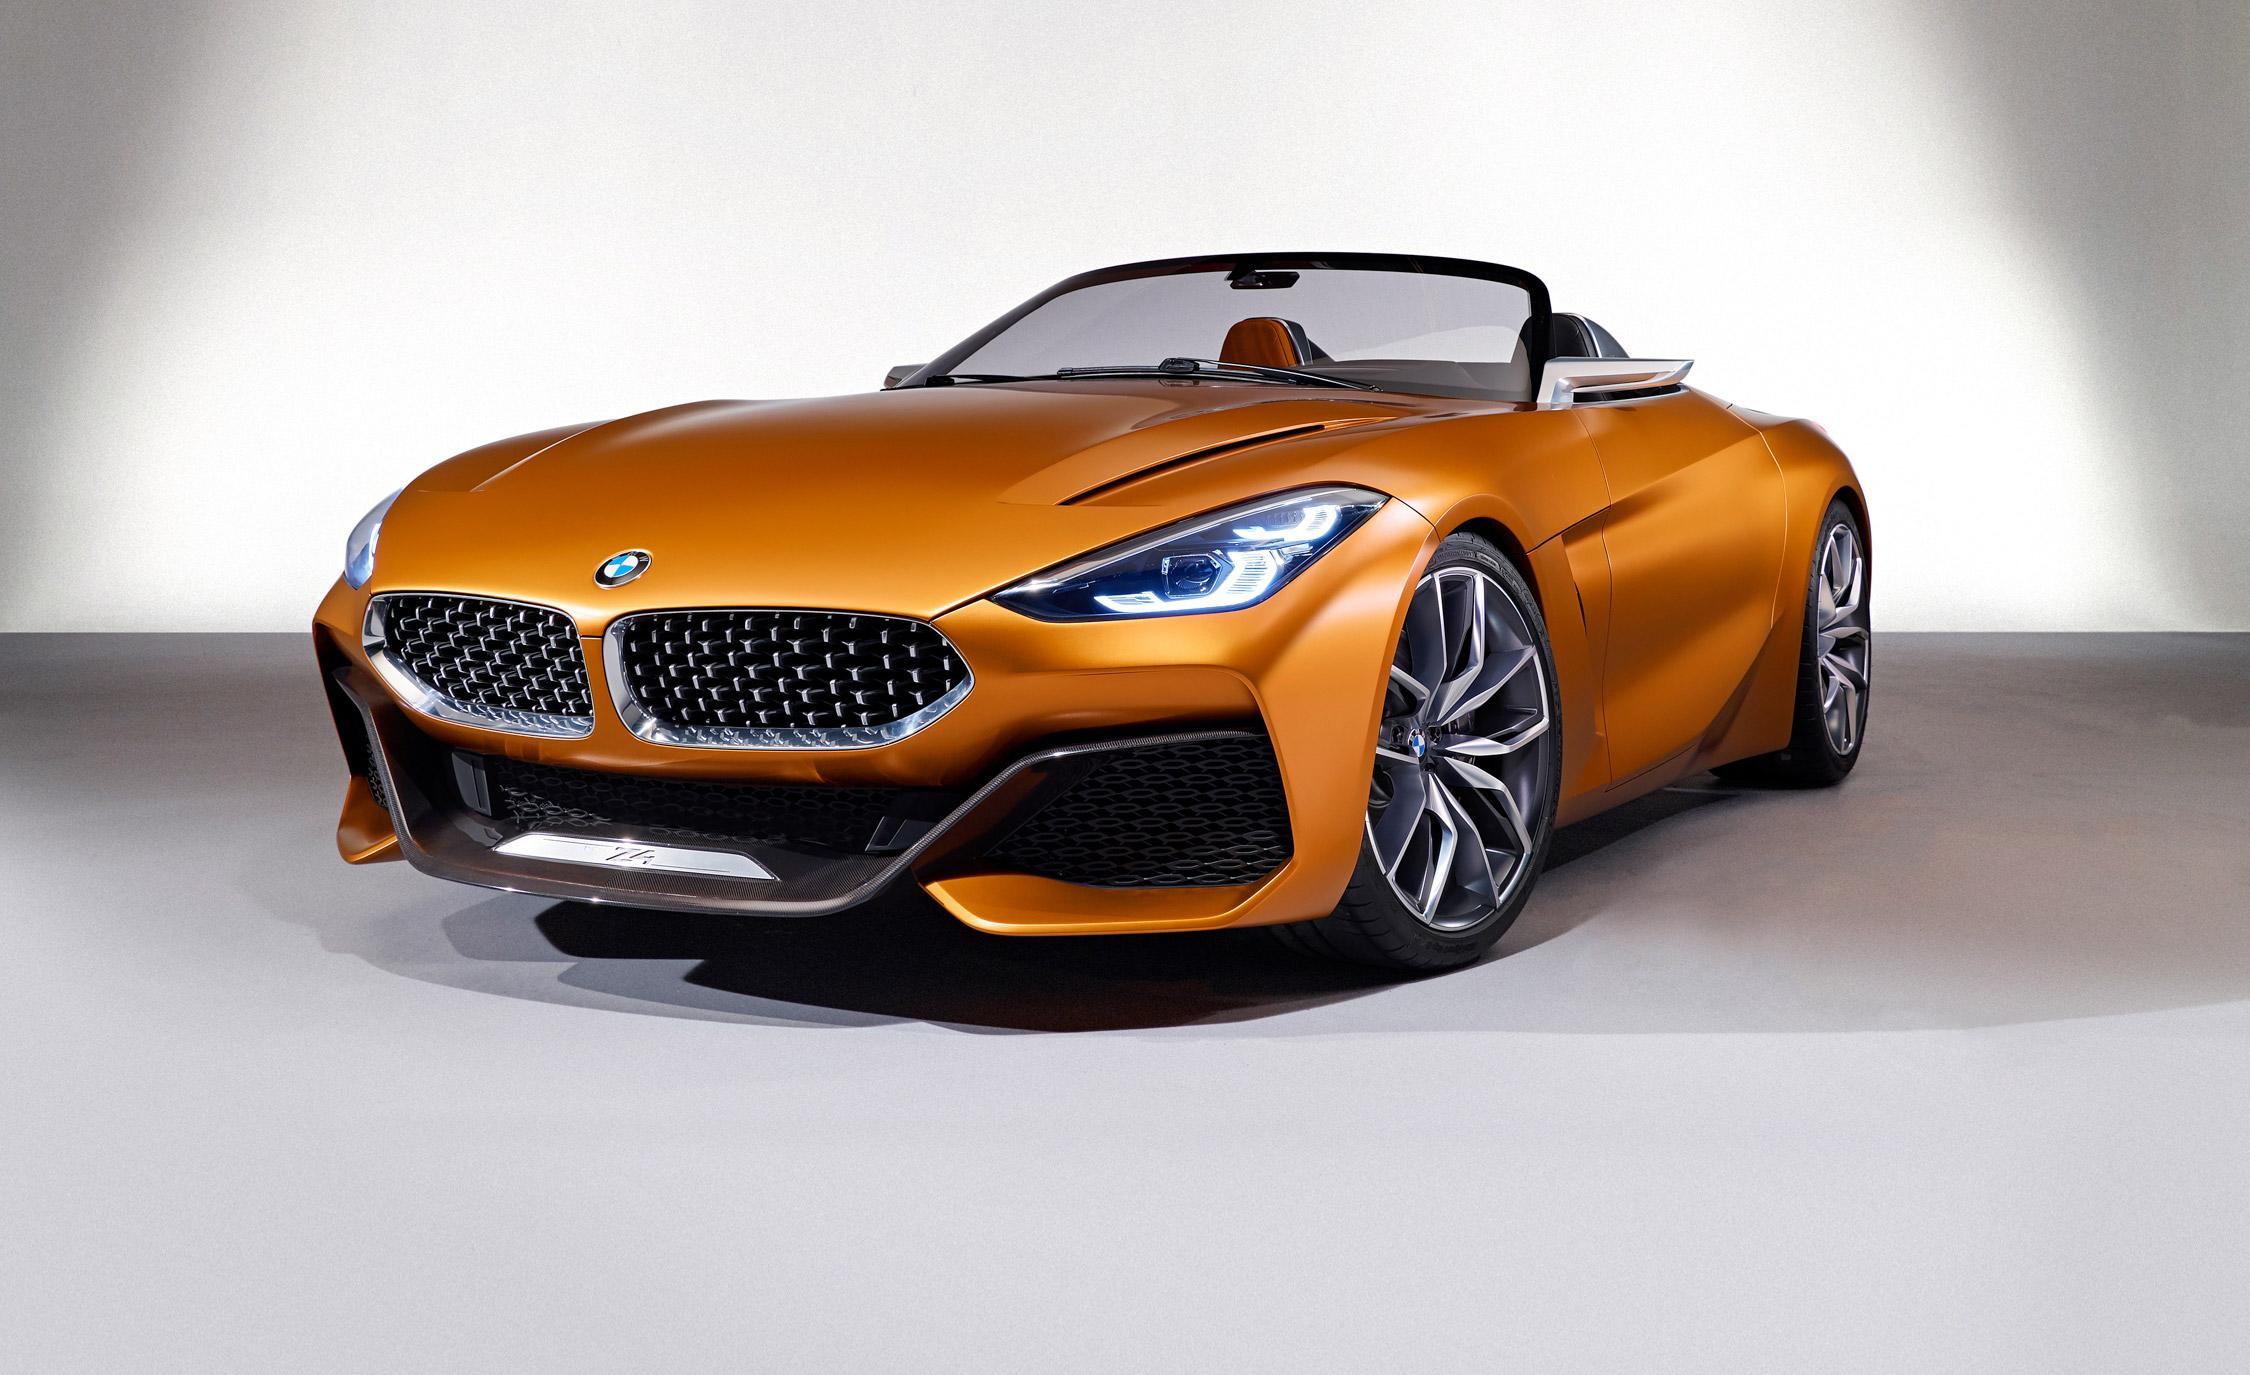 Bmw Concept Z4 Dissected Styling Powertrain Interior And More